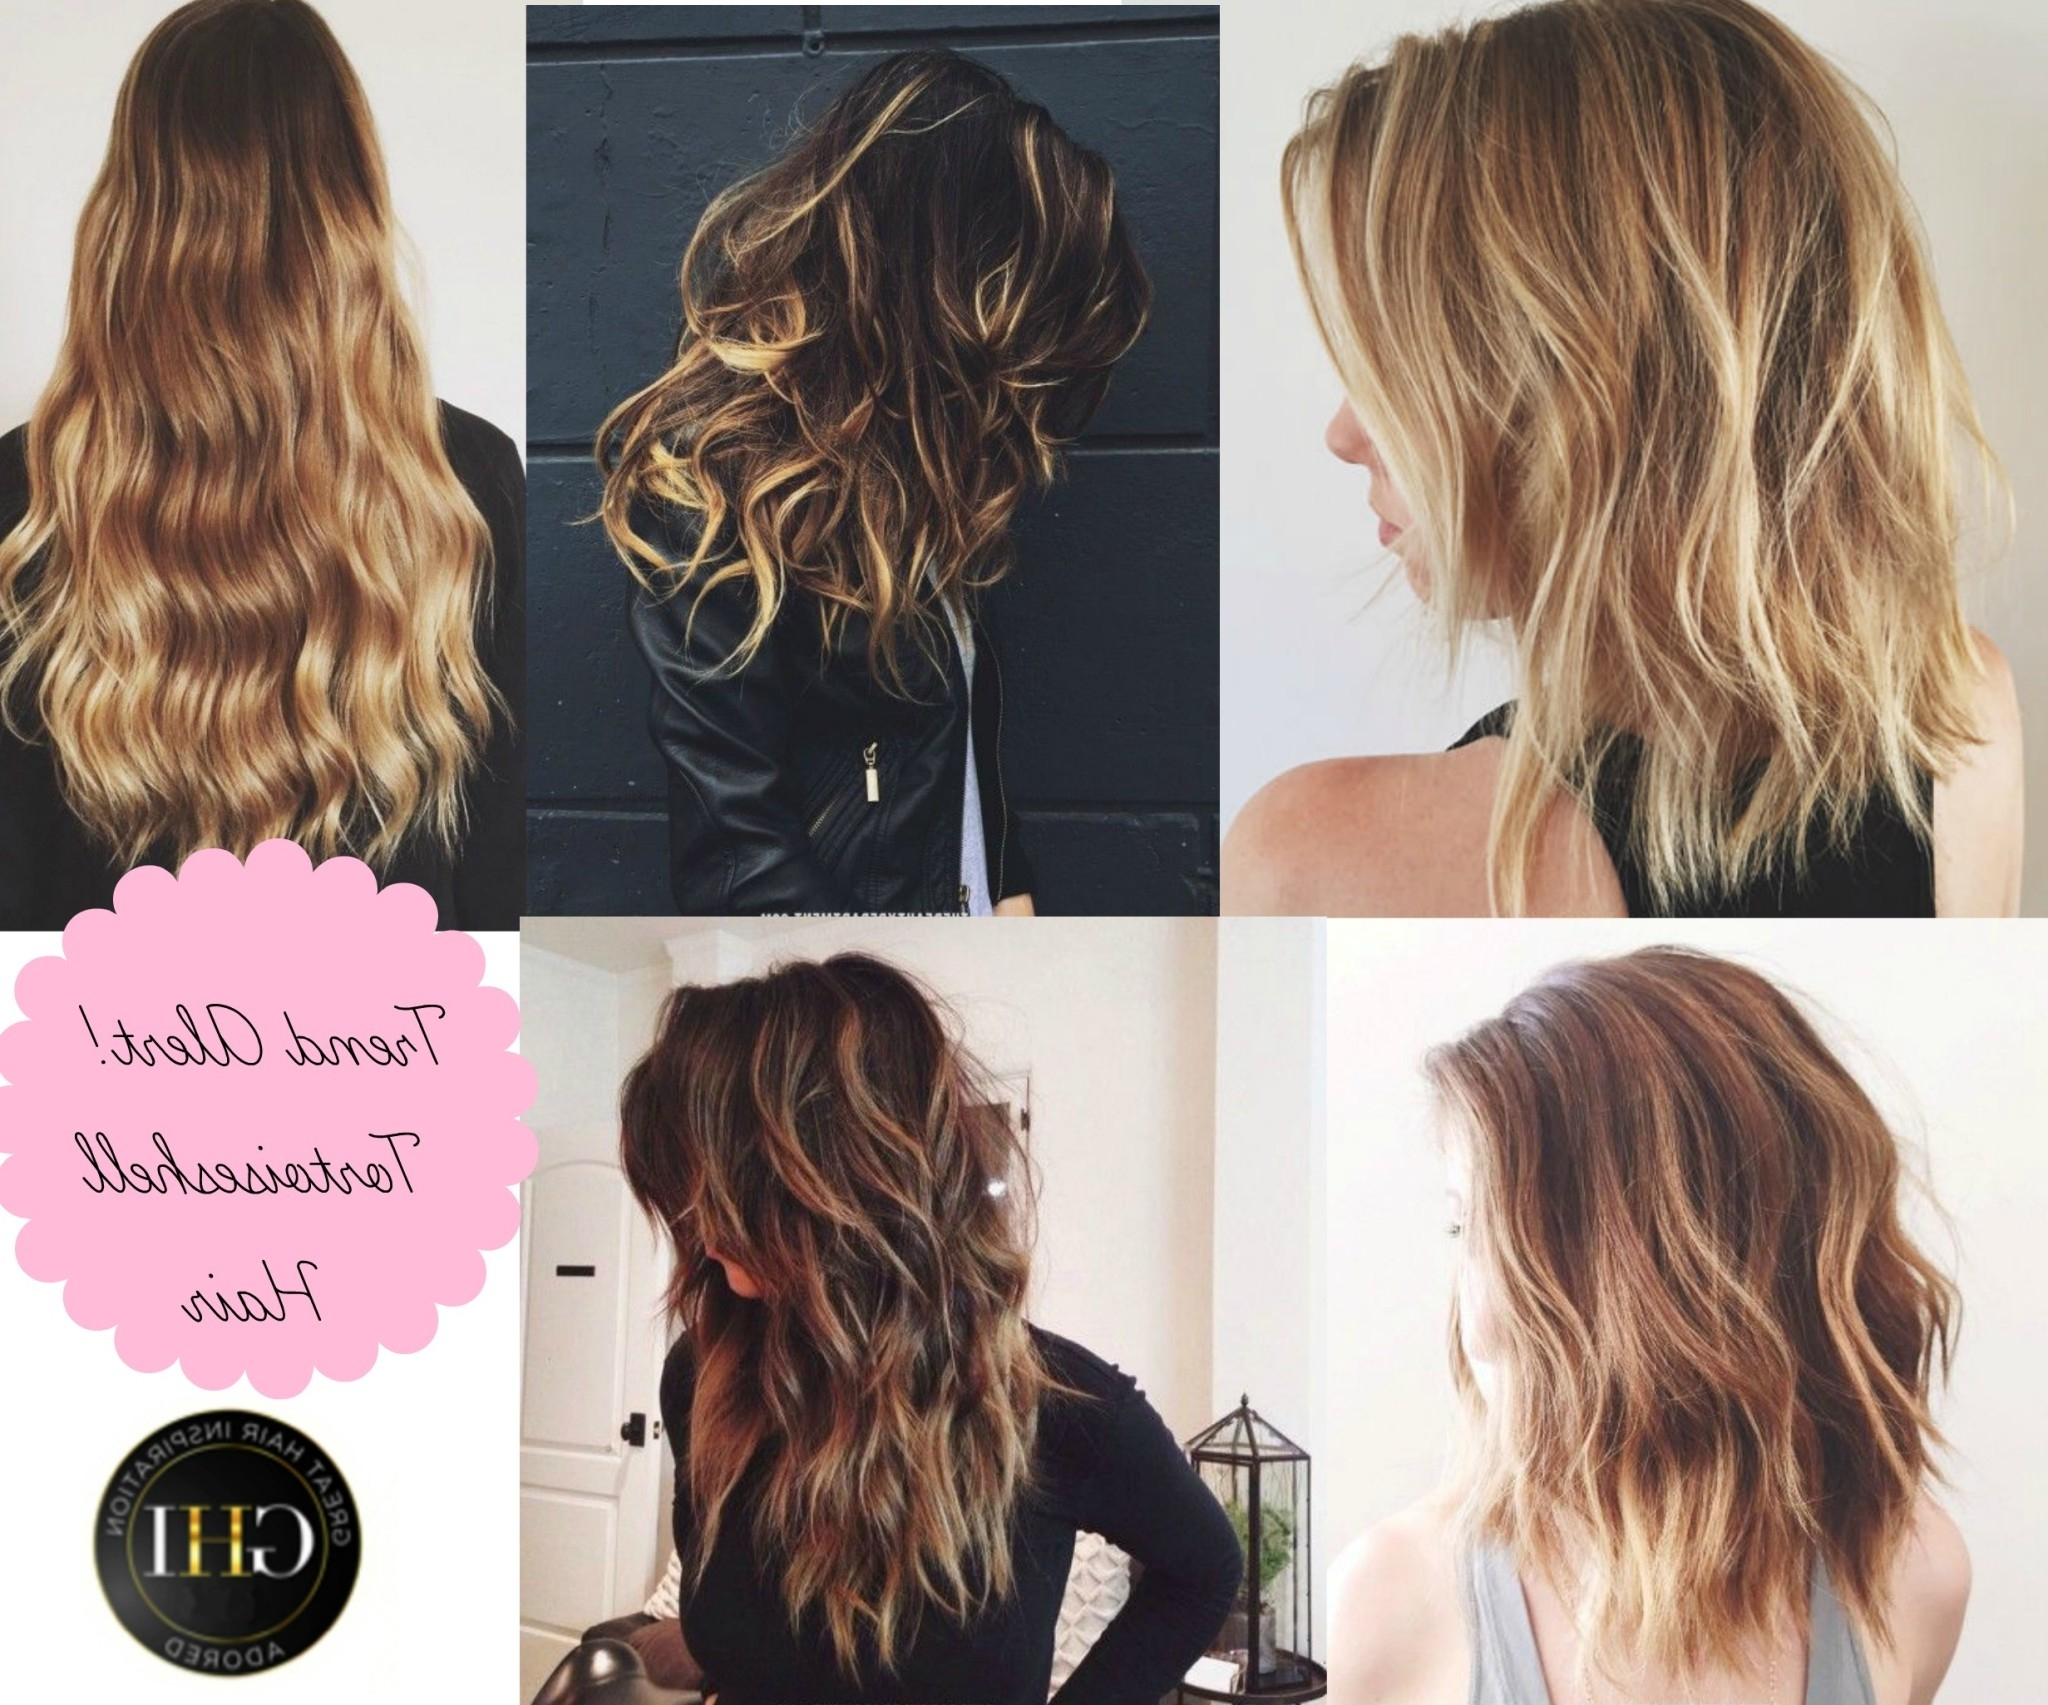 Trend Alert – Tortoiseshell Hair – Great Hair Inspiration Within Widely Used Tortoiseshell Straight Blonde Hairstyles (View 17 of 20)